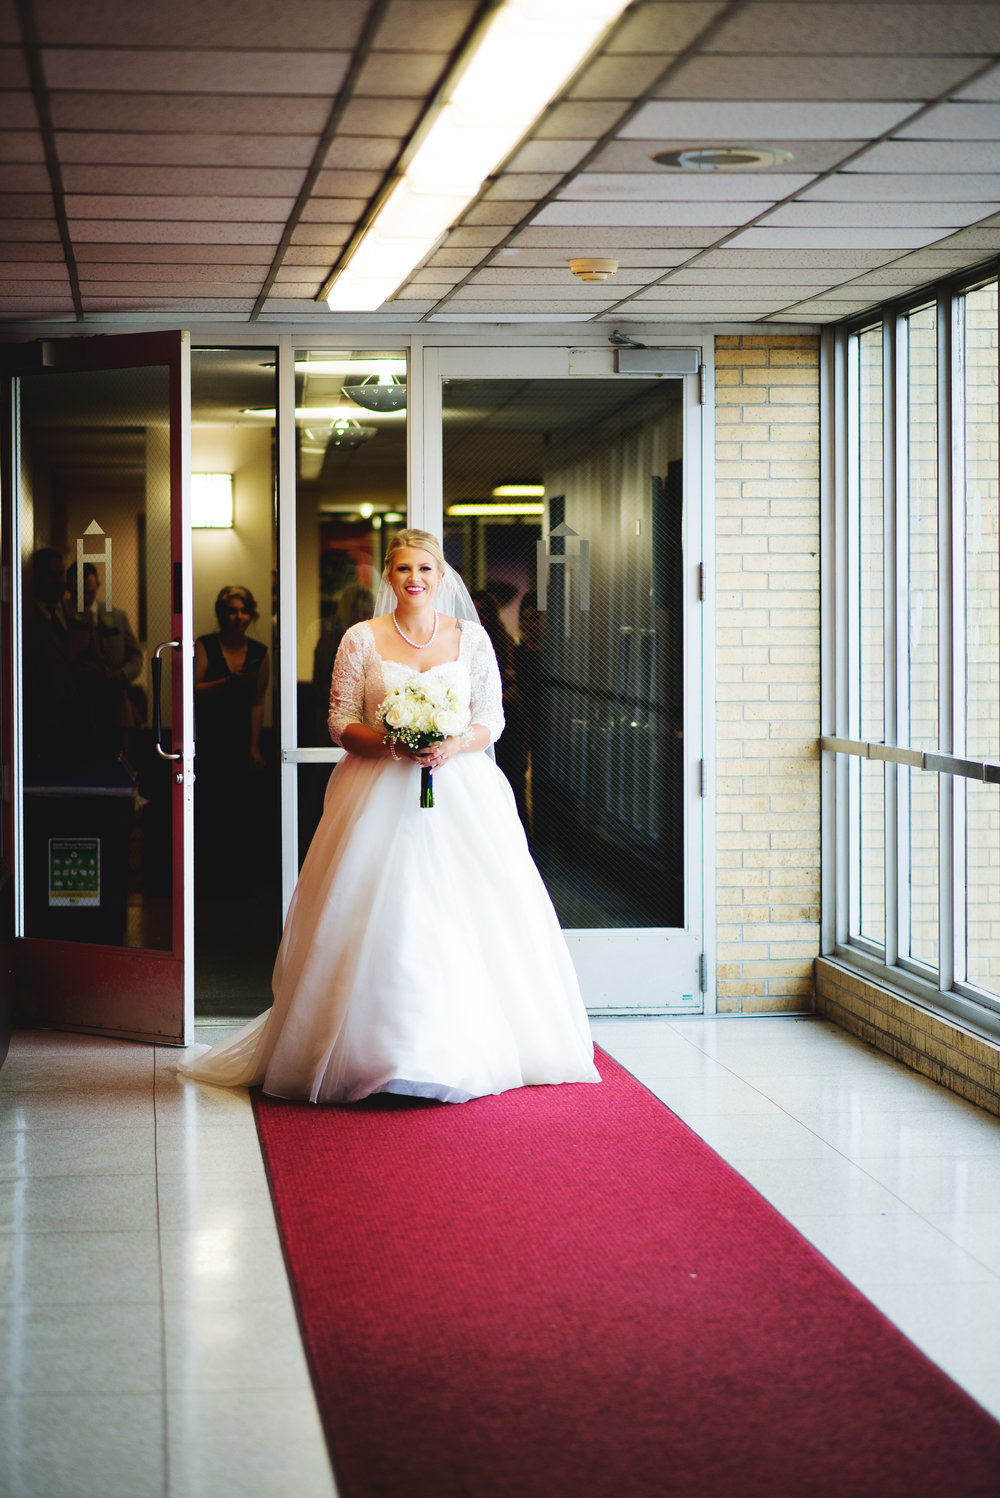 King-Northern-Illinois-University-Wedding025.jpg